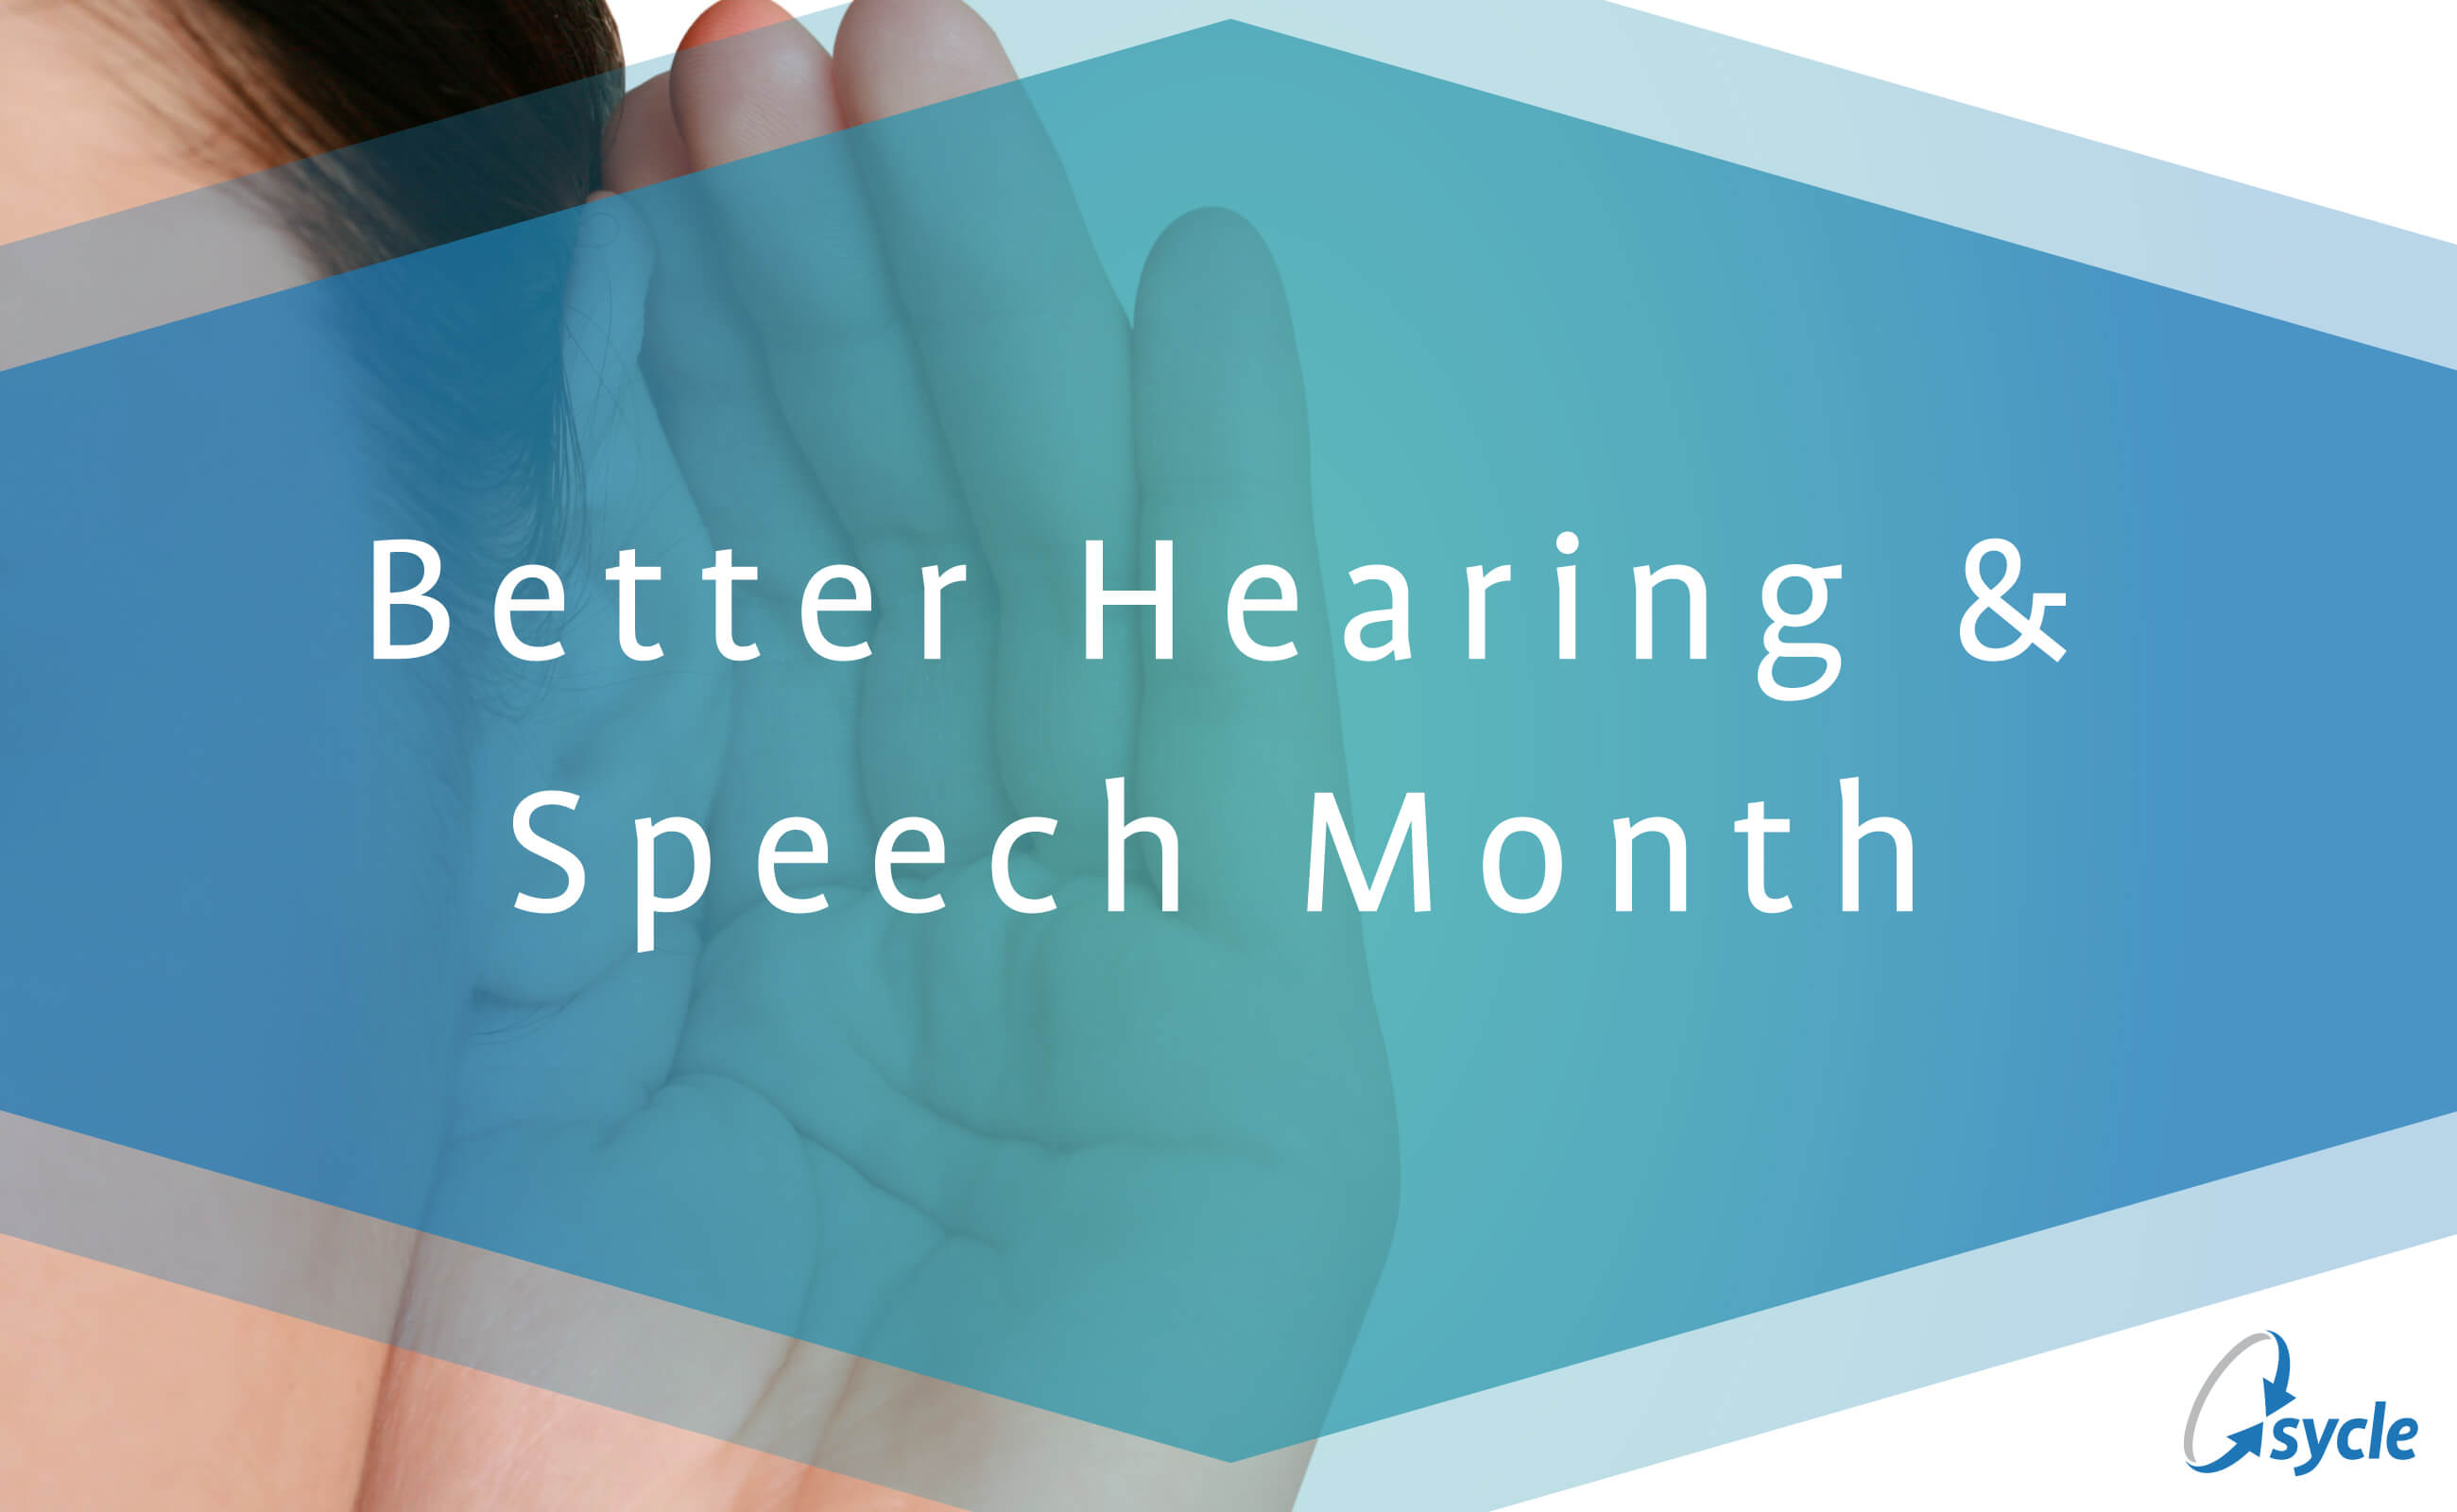 May is Better Hearing & Speech Month image